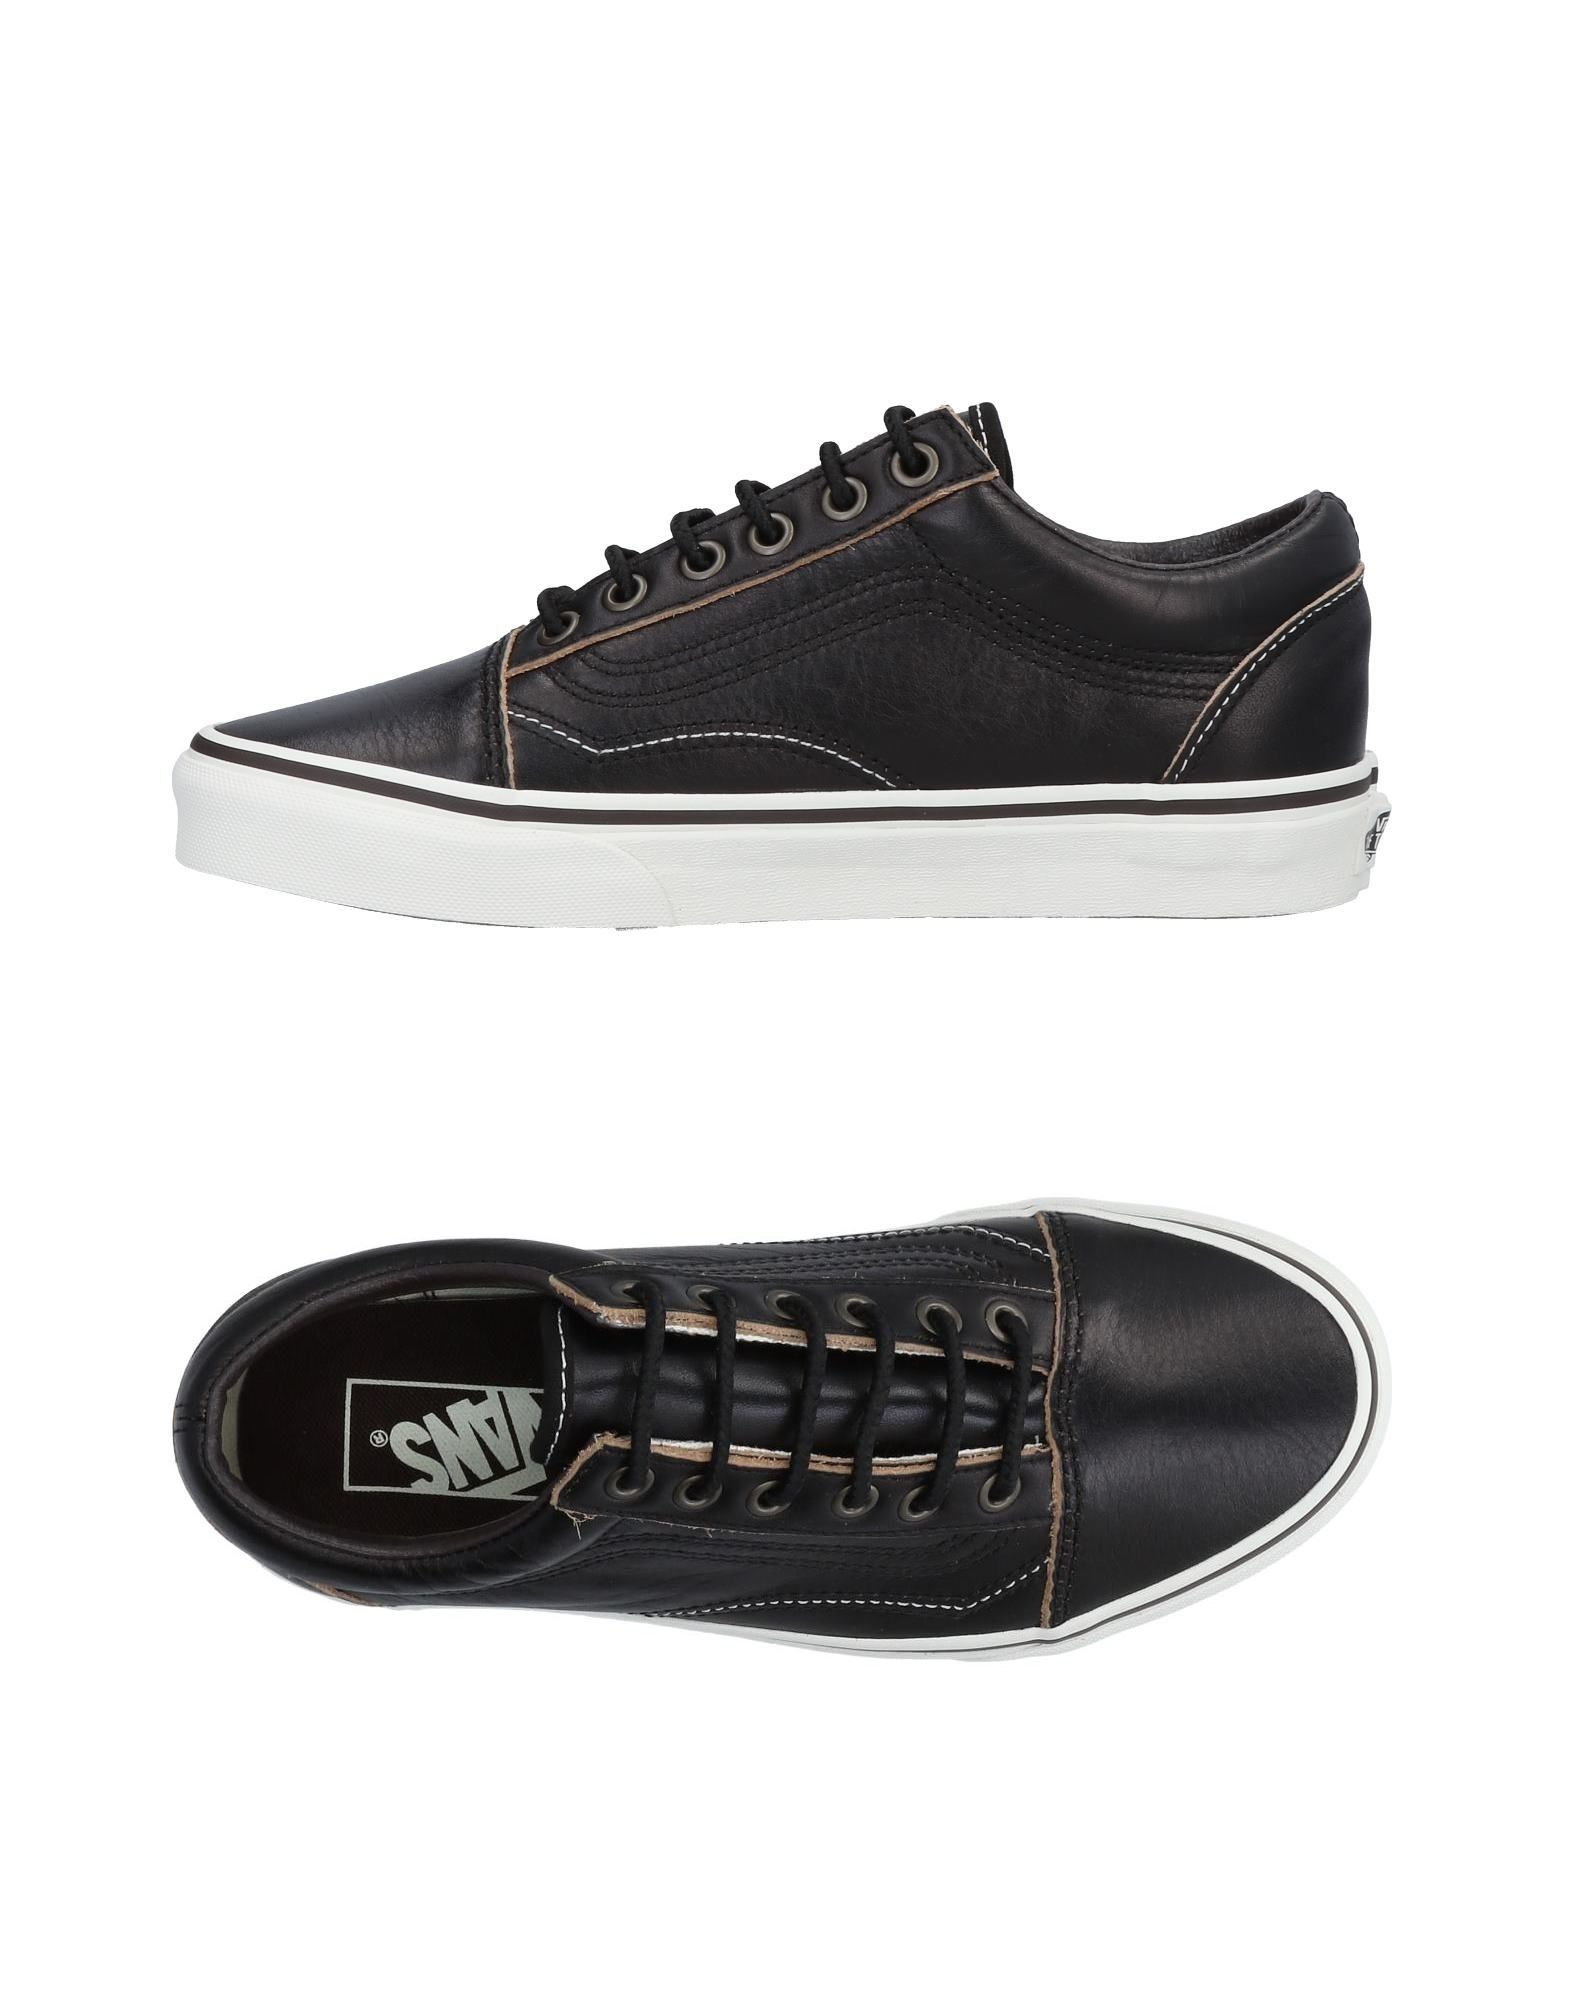 A buon mercato Sneakers Vans Donna - 11492336NN